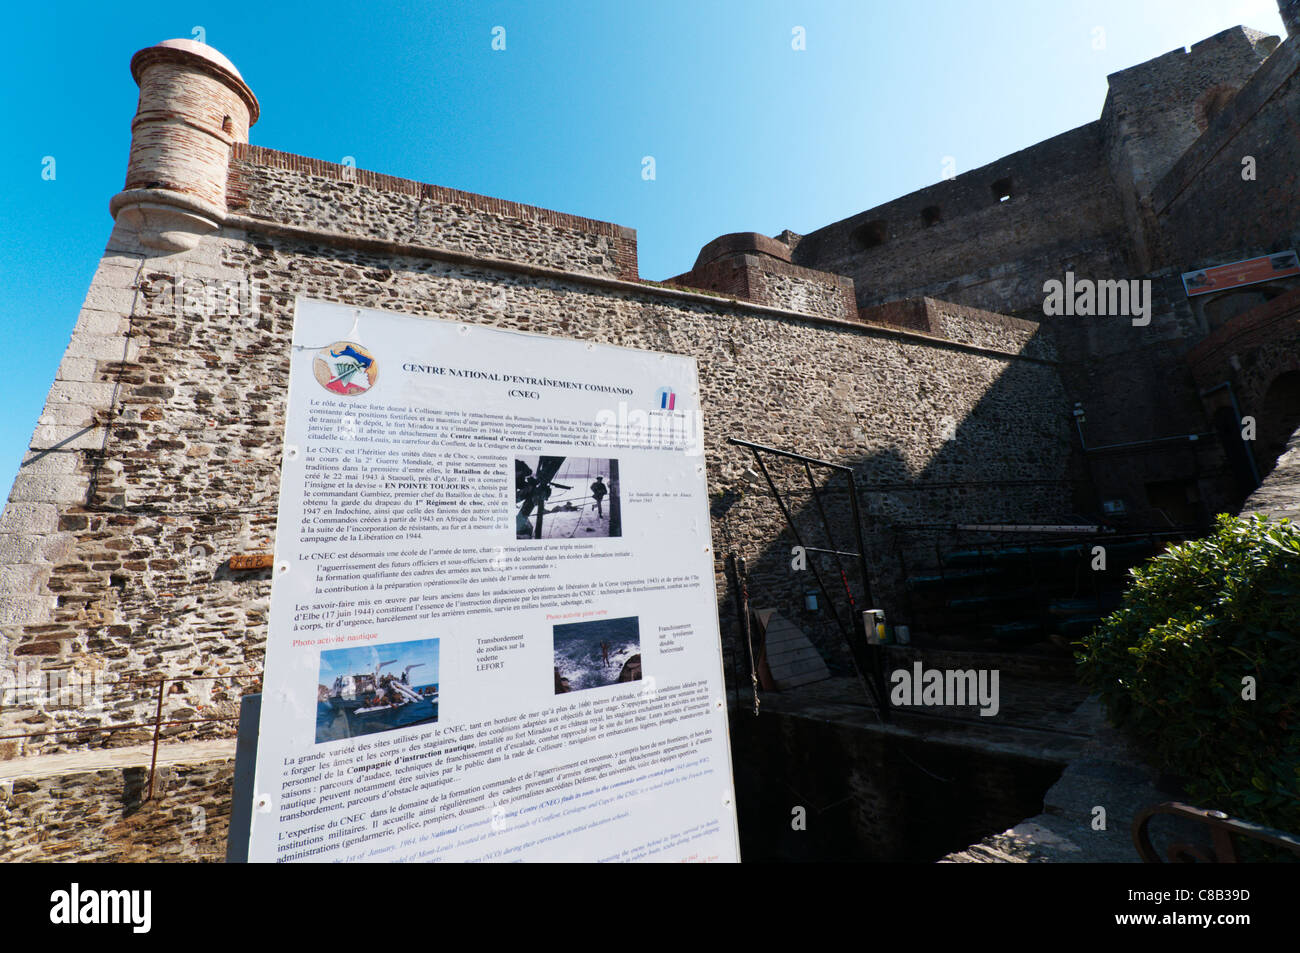 The French Commando training centre (Centre National d'Entrainement Commando) in Vauban's Fort Miradou, - Stock Image